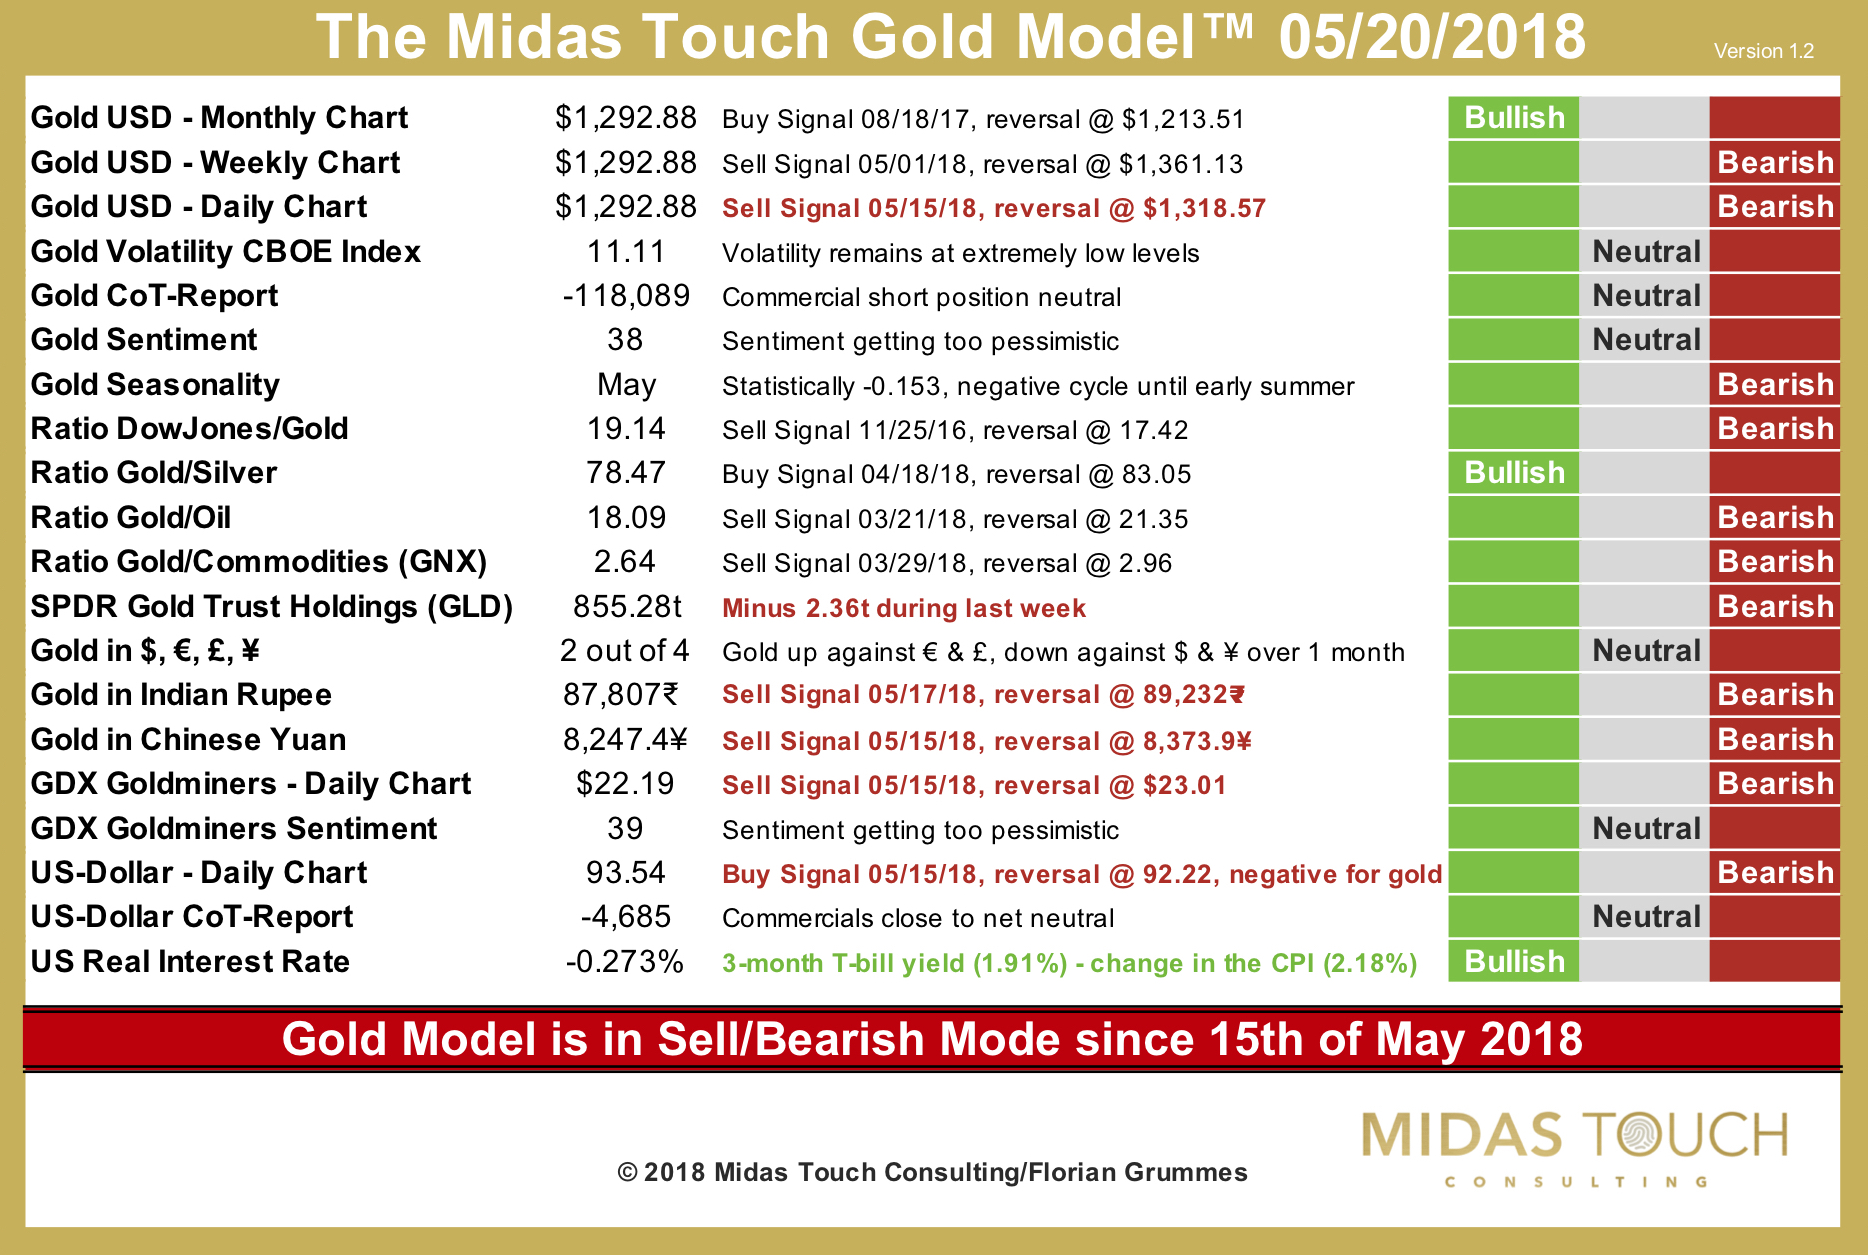 The Midas Touch Gold Model™ as of May 20th, 2018